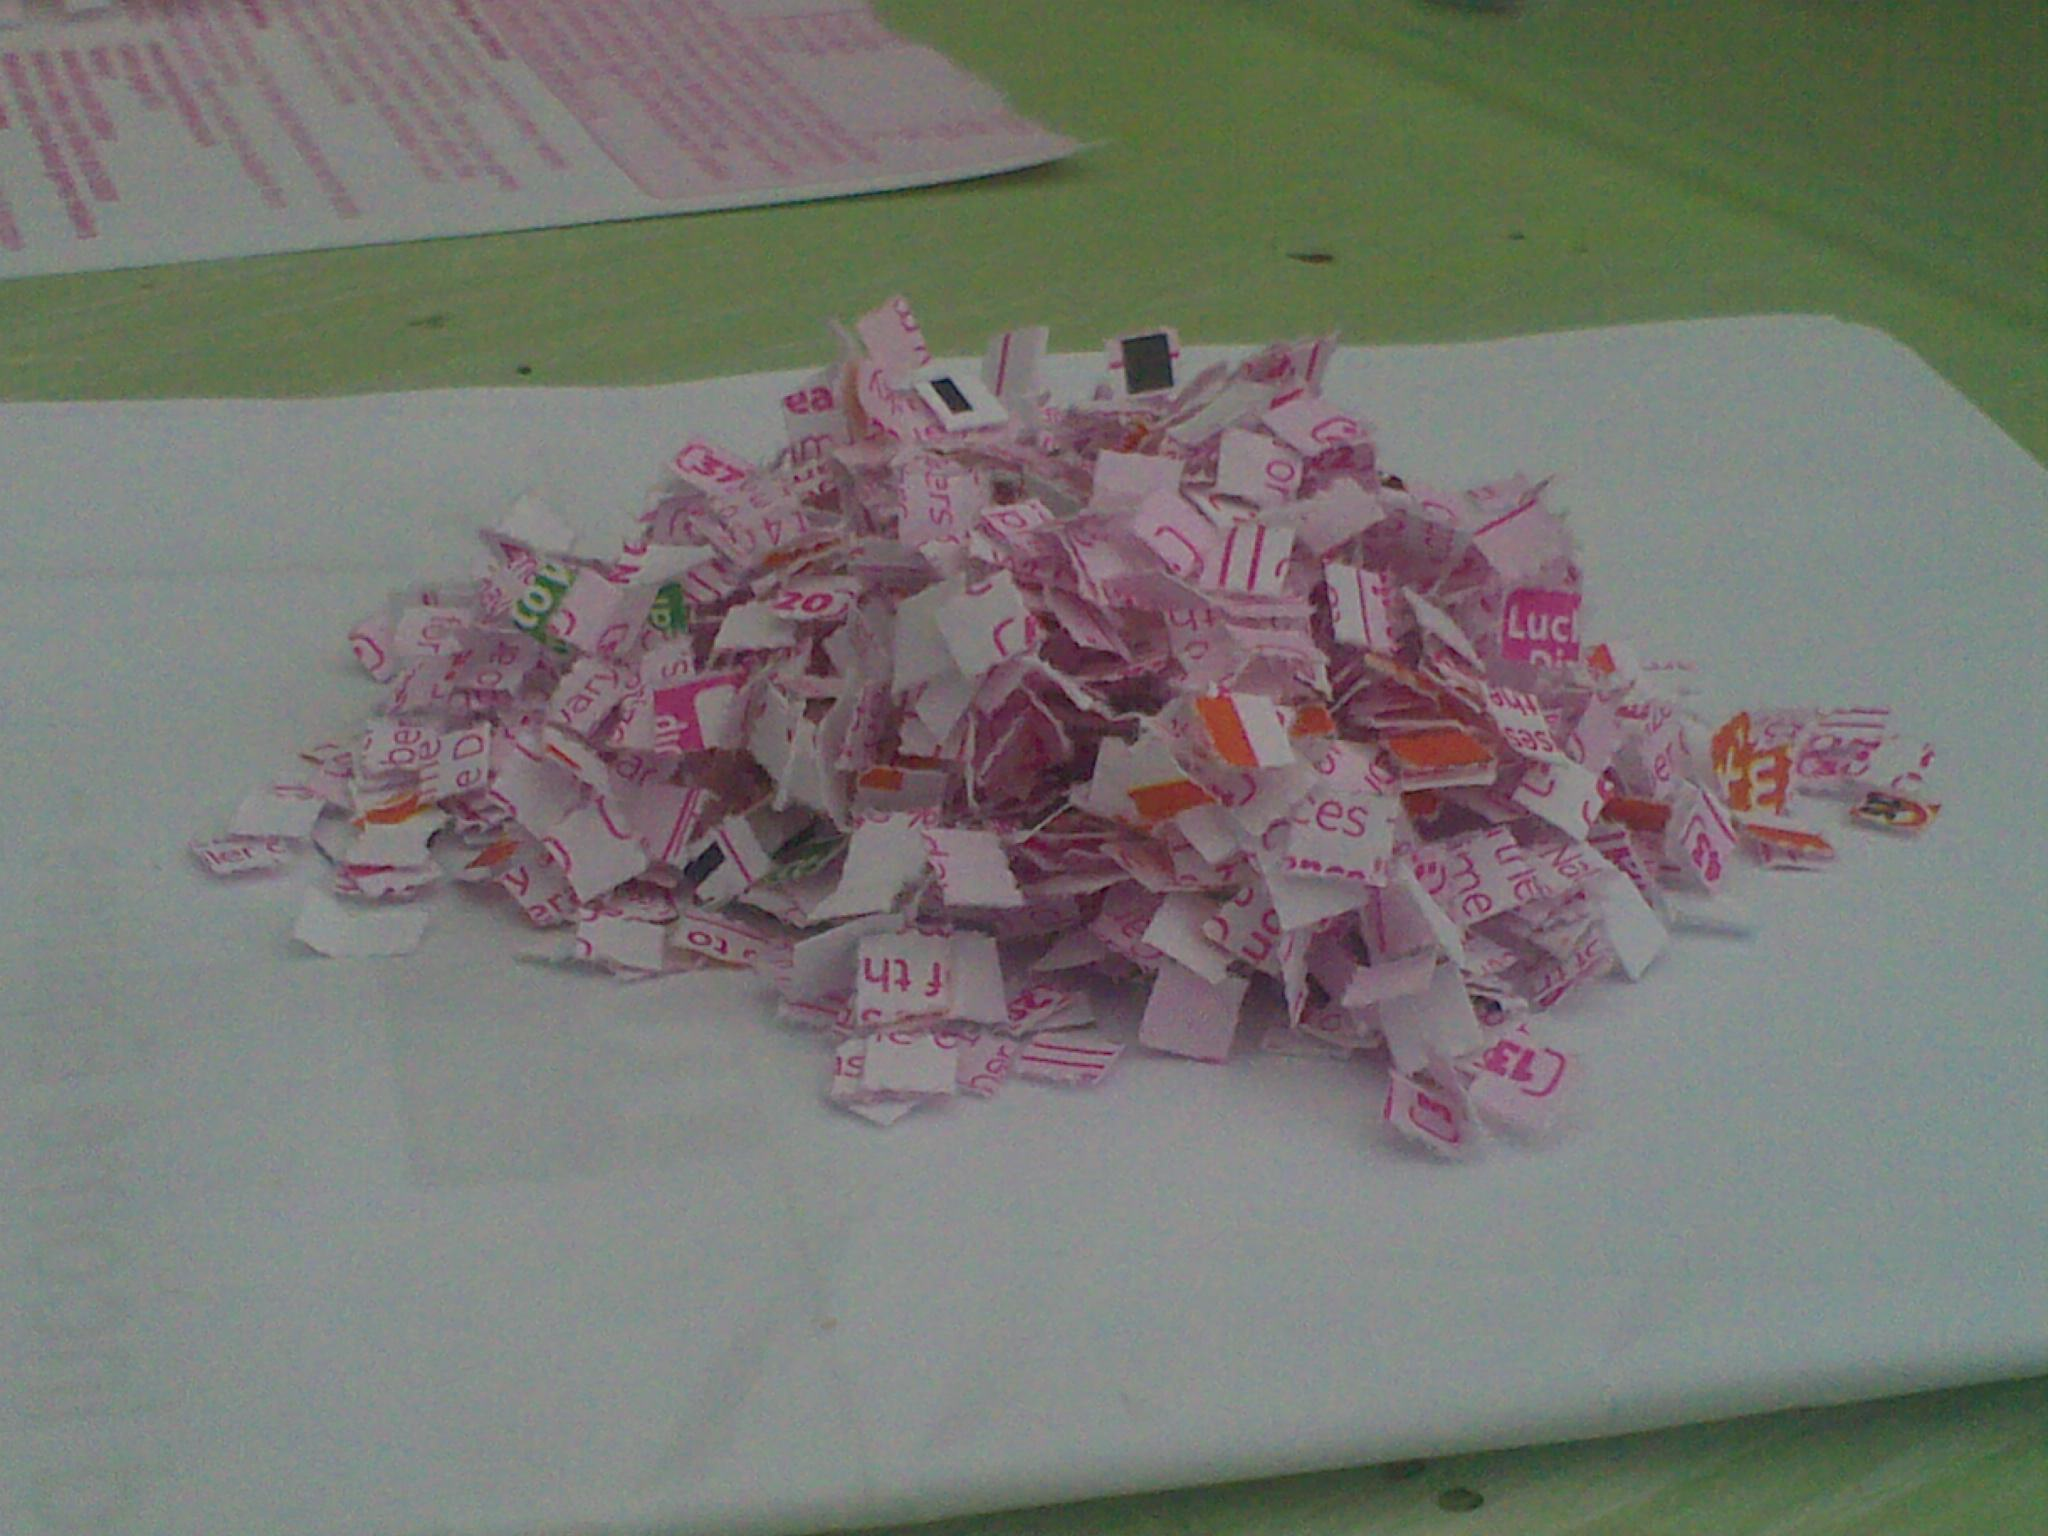 832c1206a The shredded remains of a National Lottery play slip.